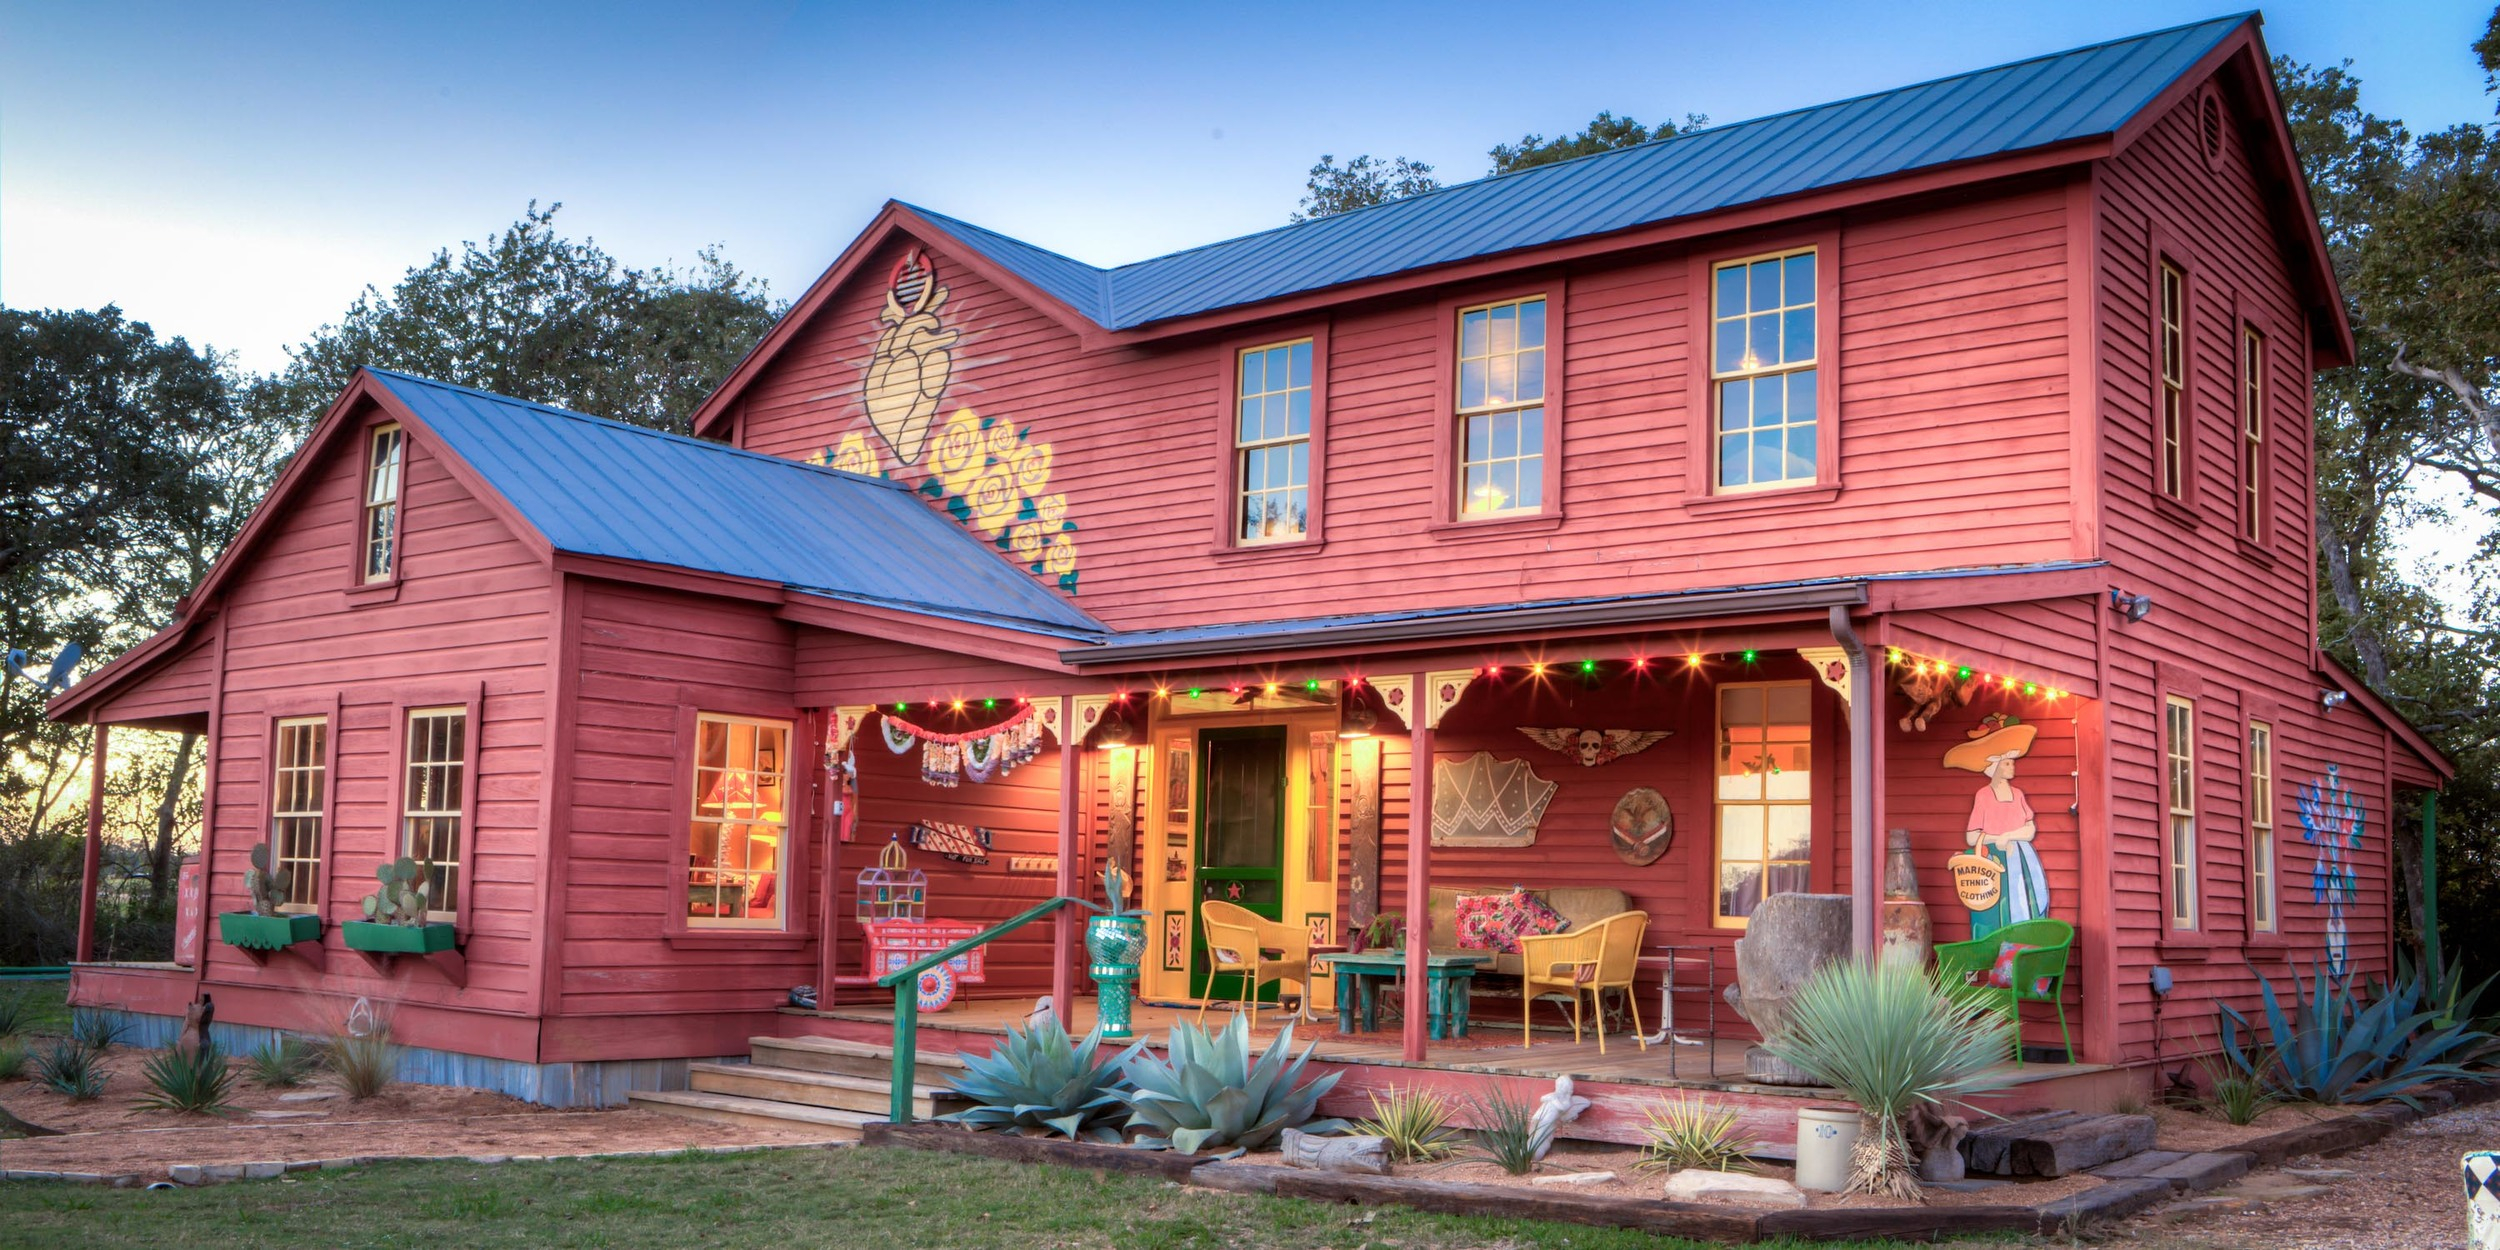 Red House EXT 2 HDR 1.jpg